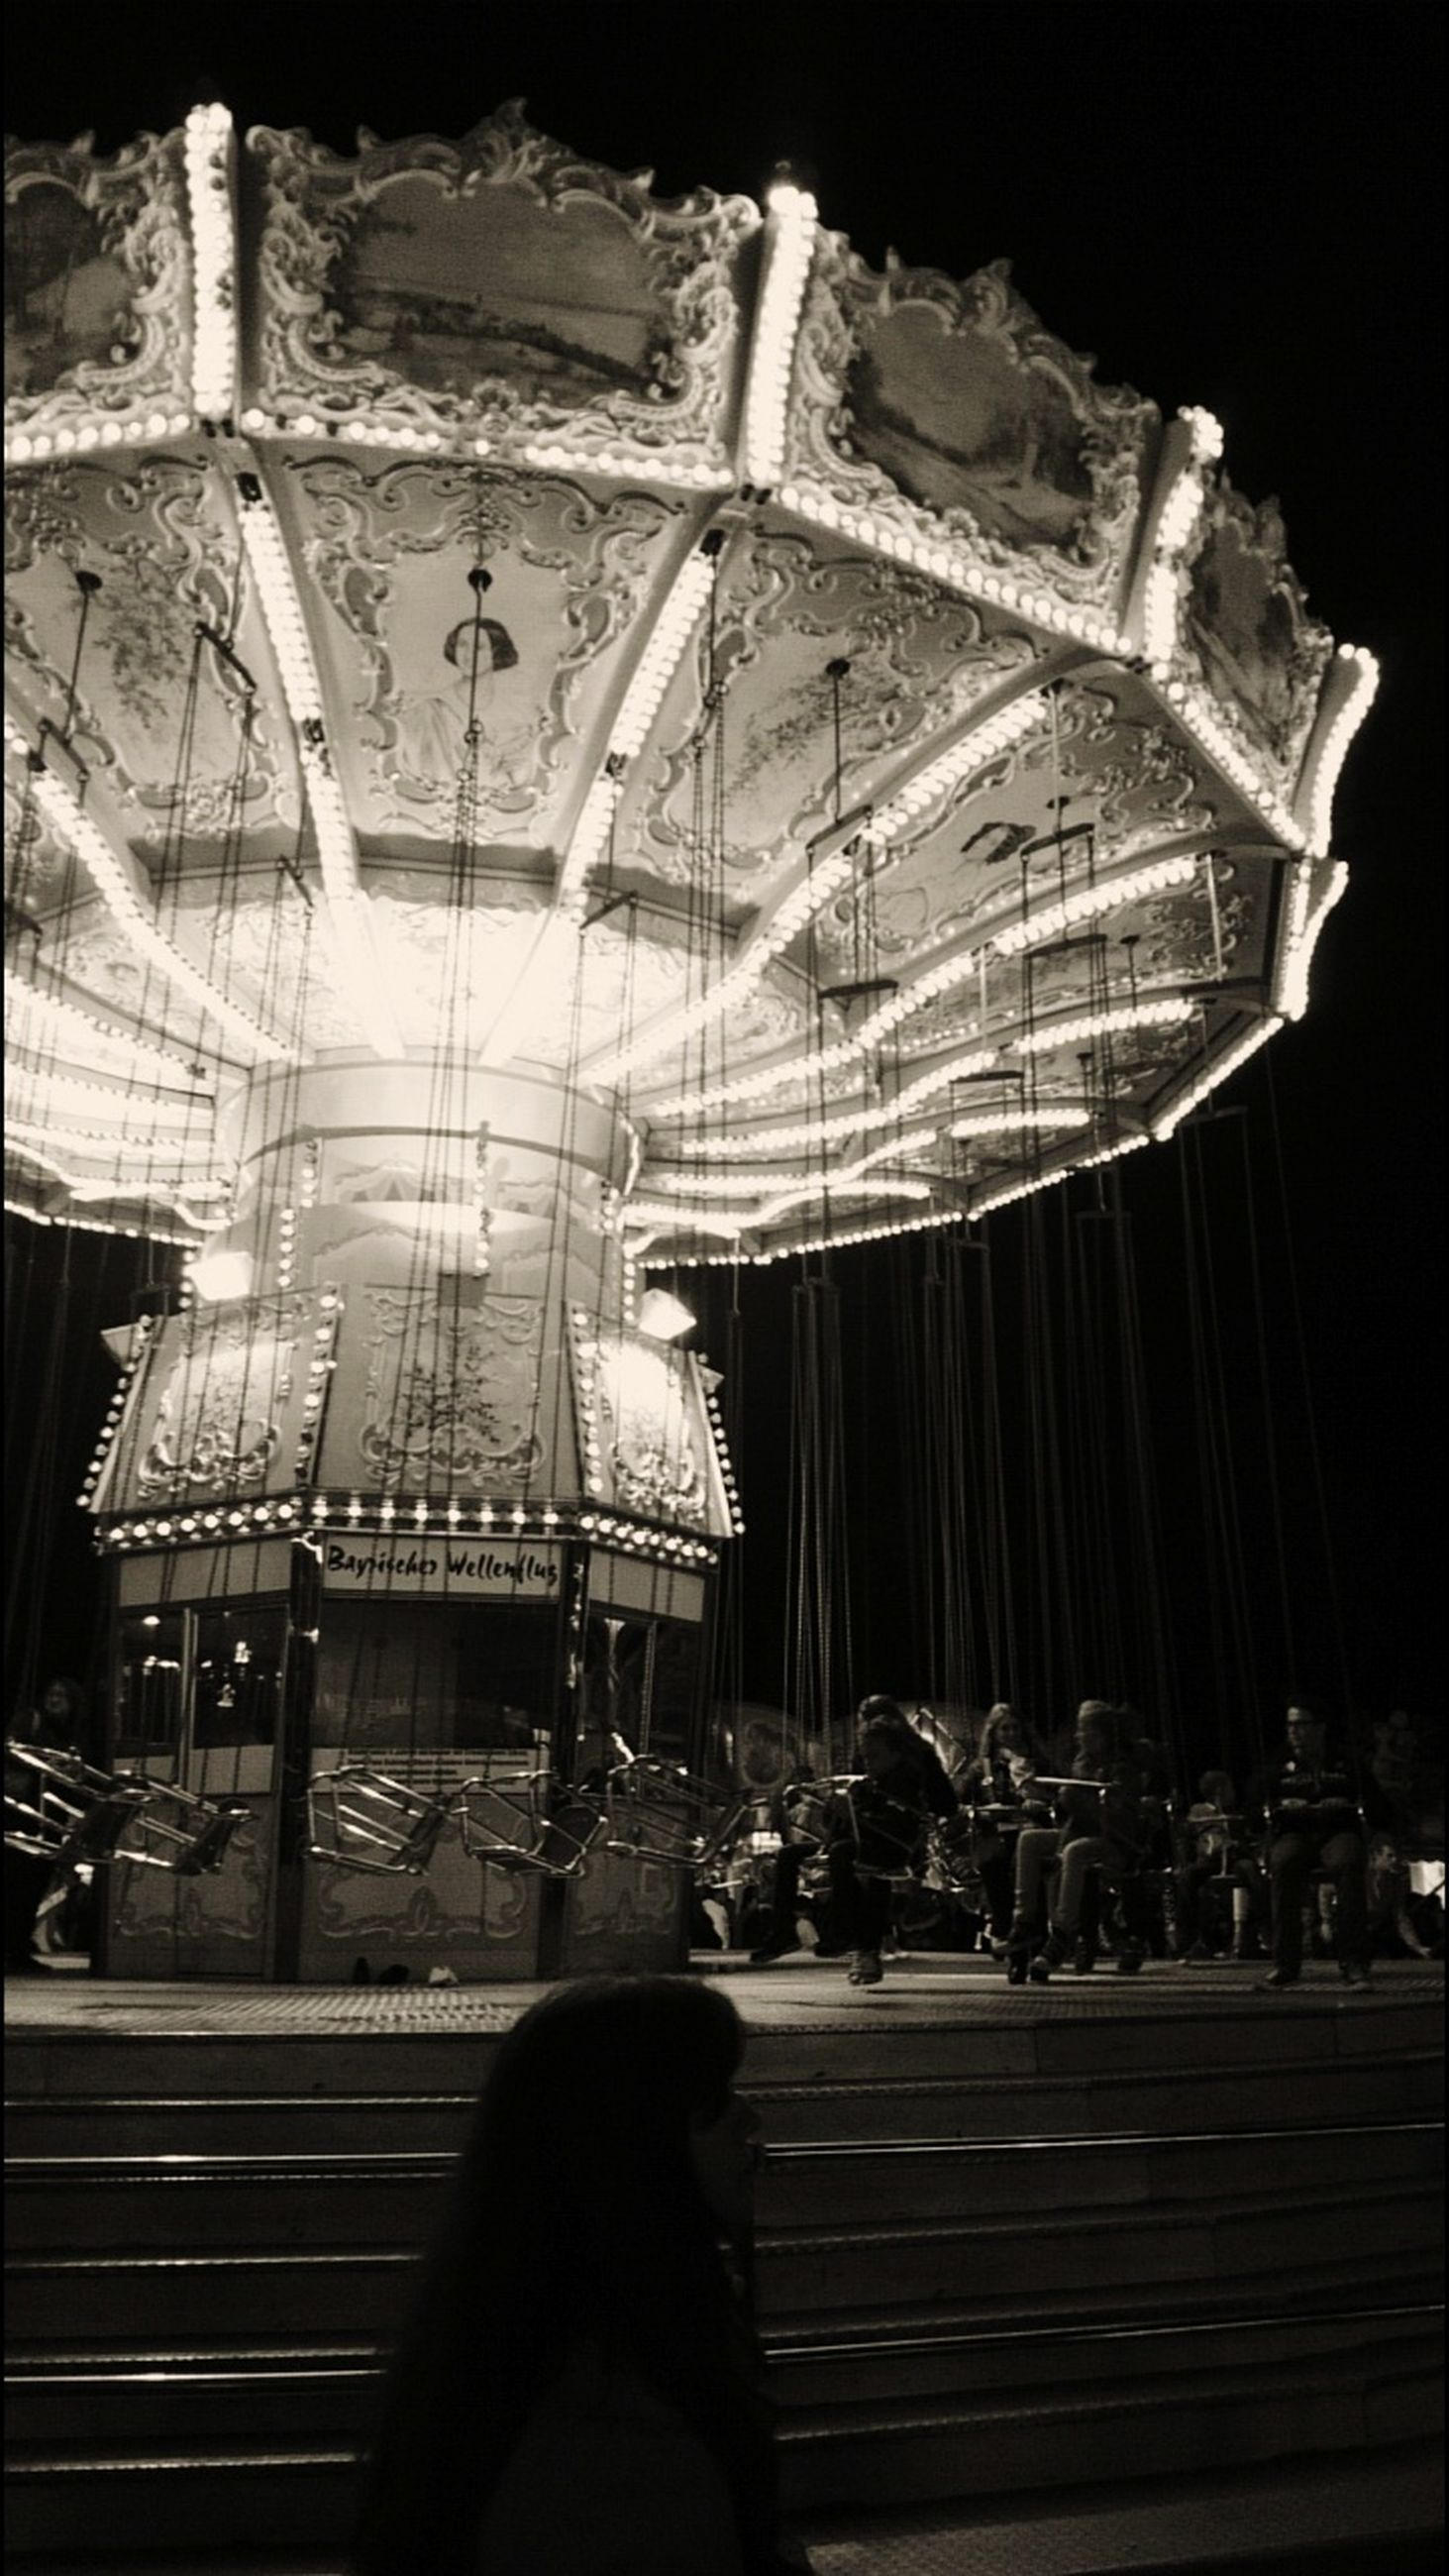 amusement park, amusement park ride, arts culture and entertainment, night, real people, illuminated, leisure activity, lifestyles, people, women, group of people, low section, sitting, architecture, carousel, incidental people, crowd, seat, human leg, stage